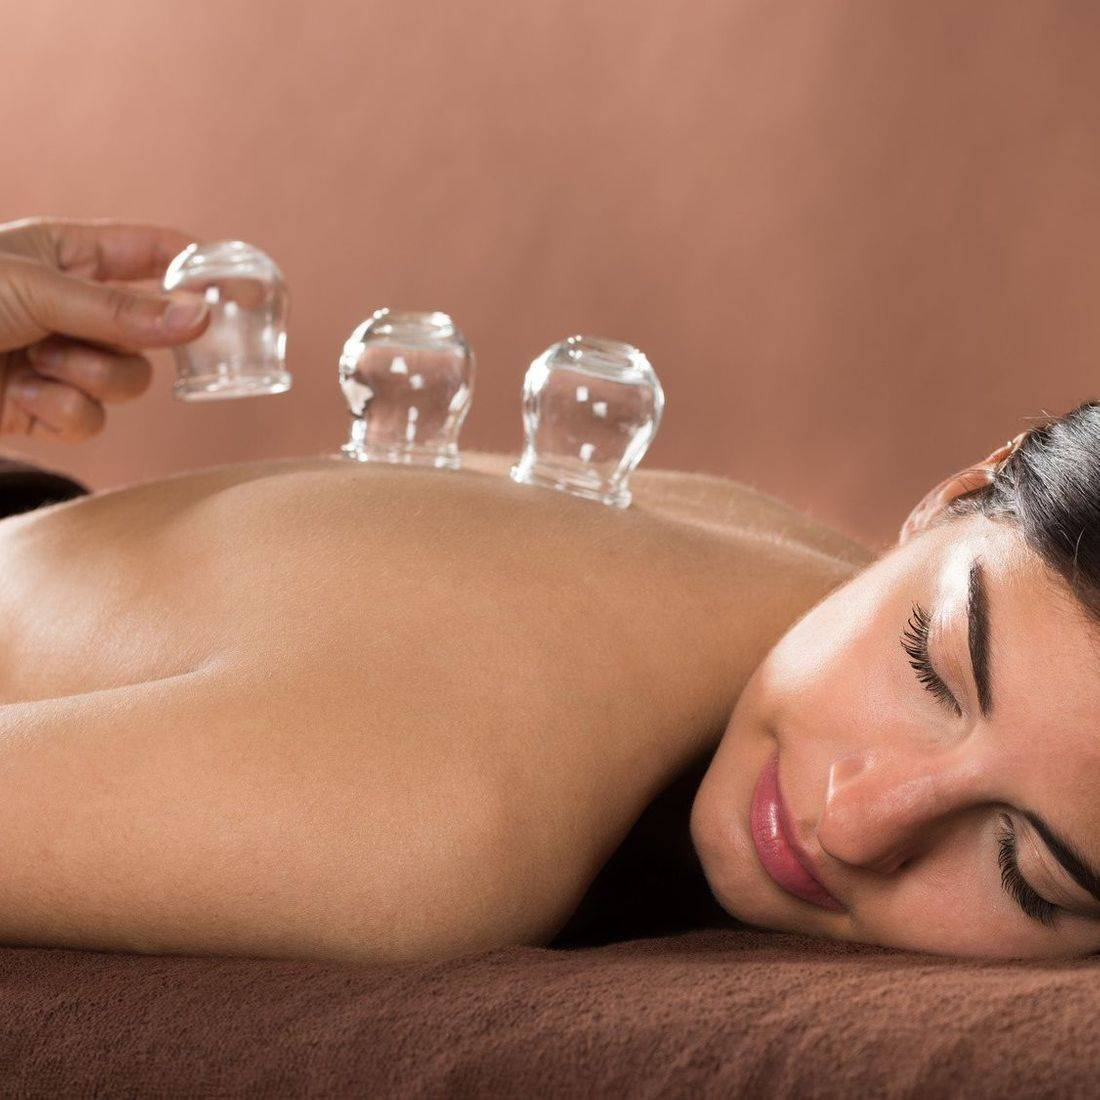 Cupping-Therapy, AIW Community Wellness Center